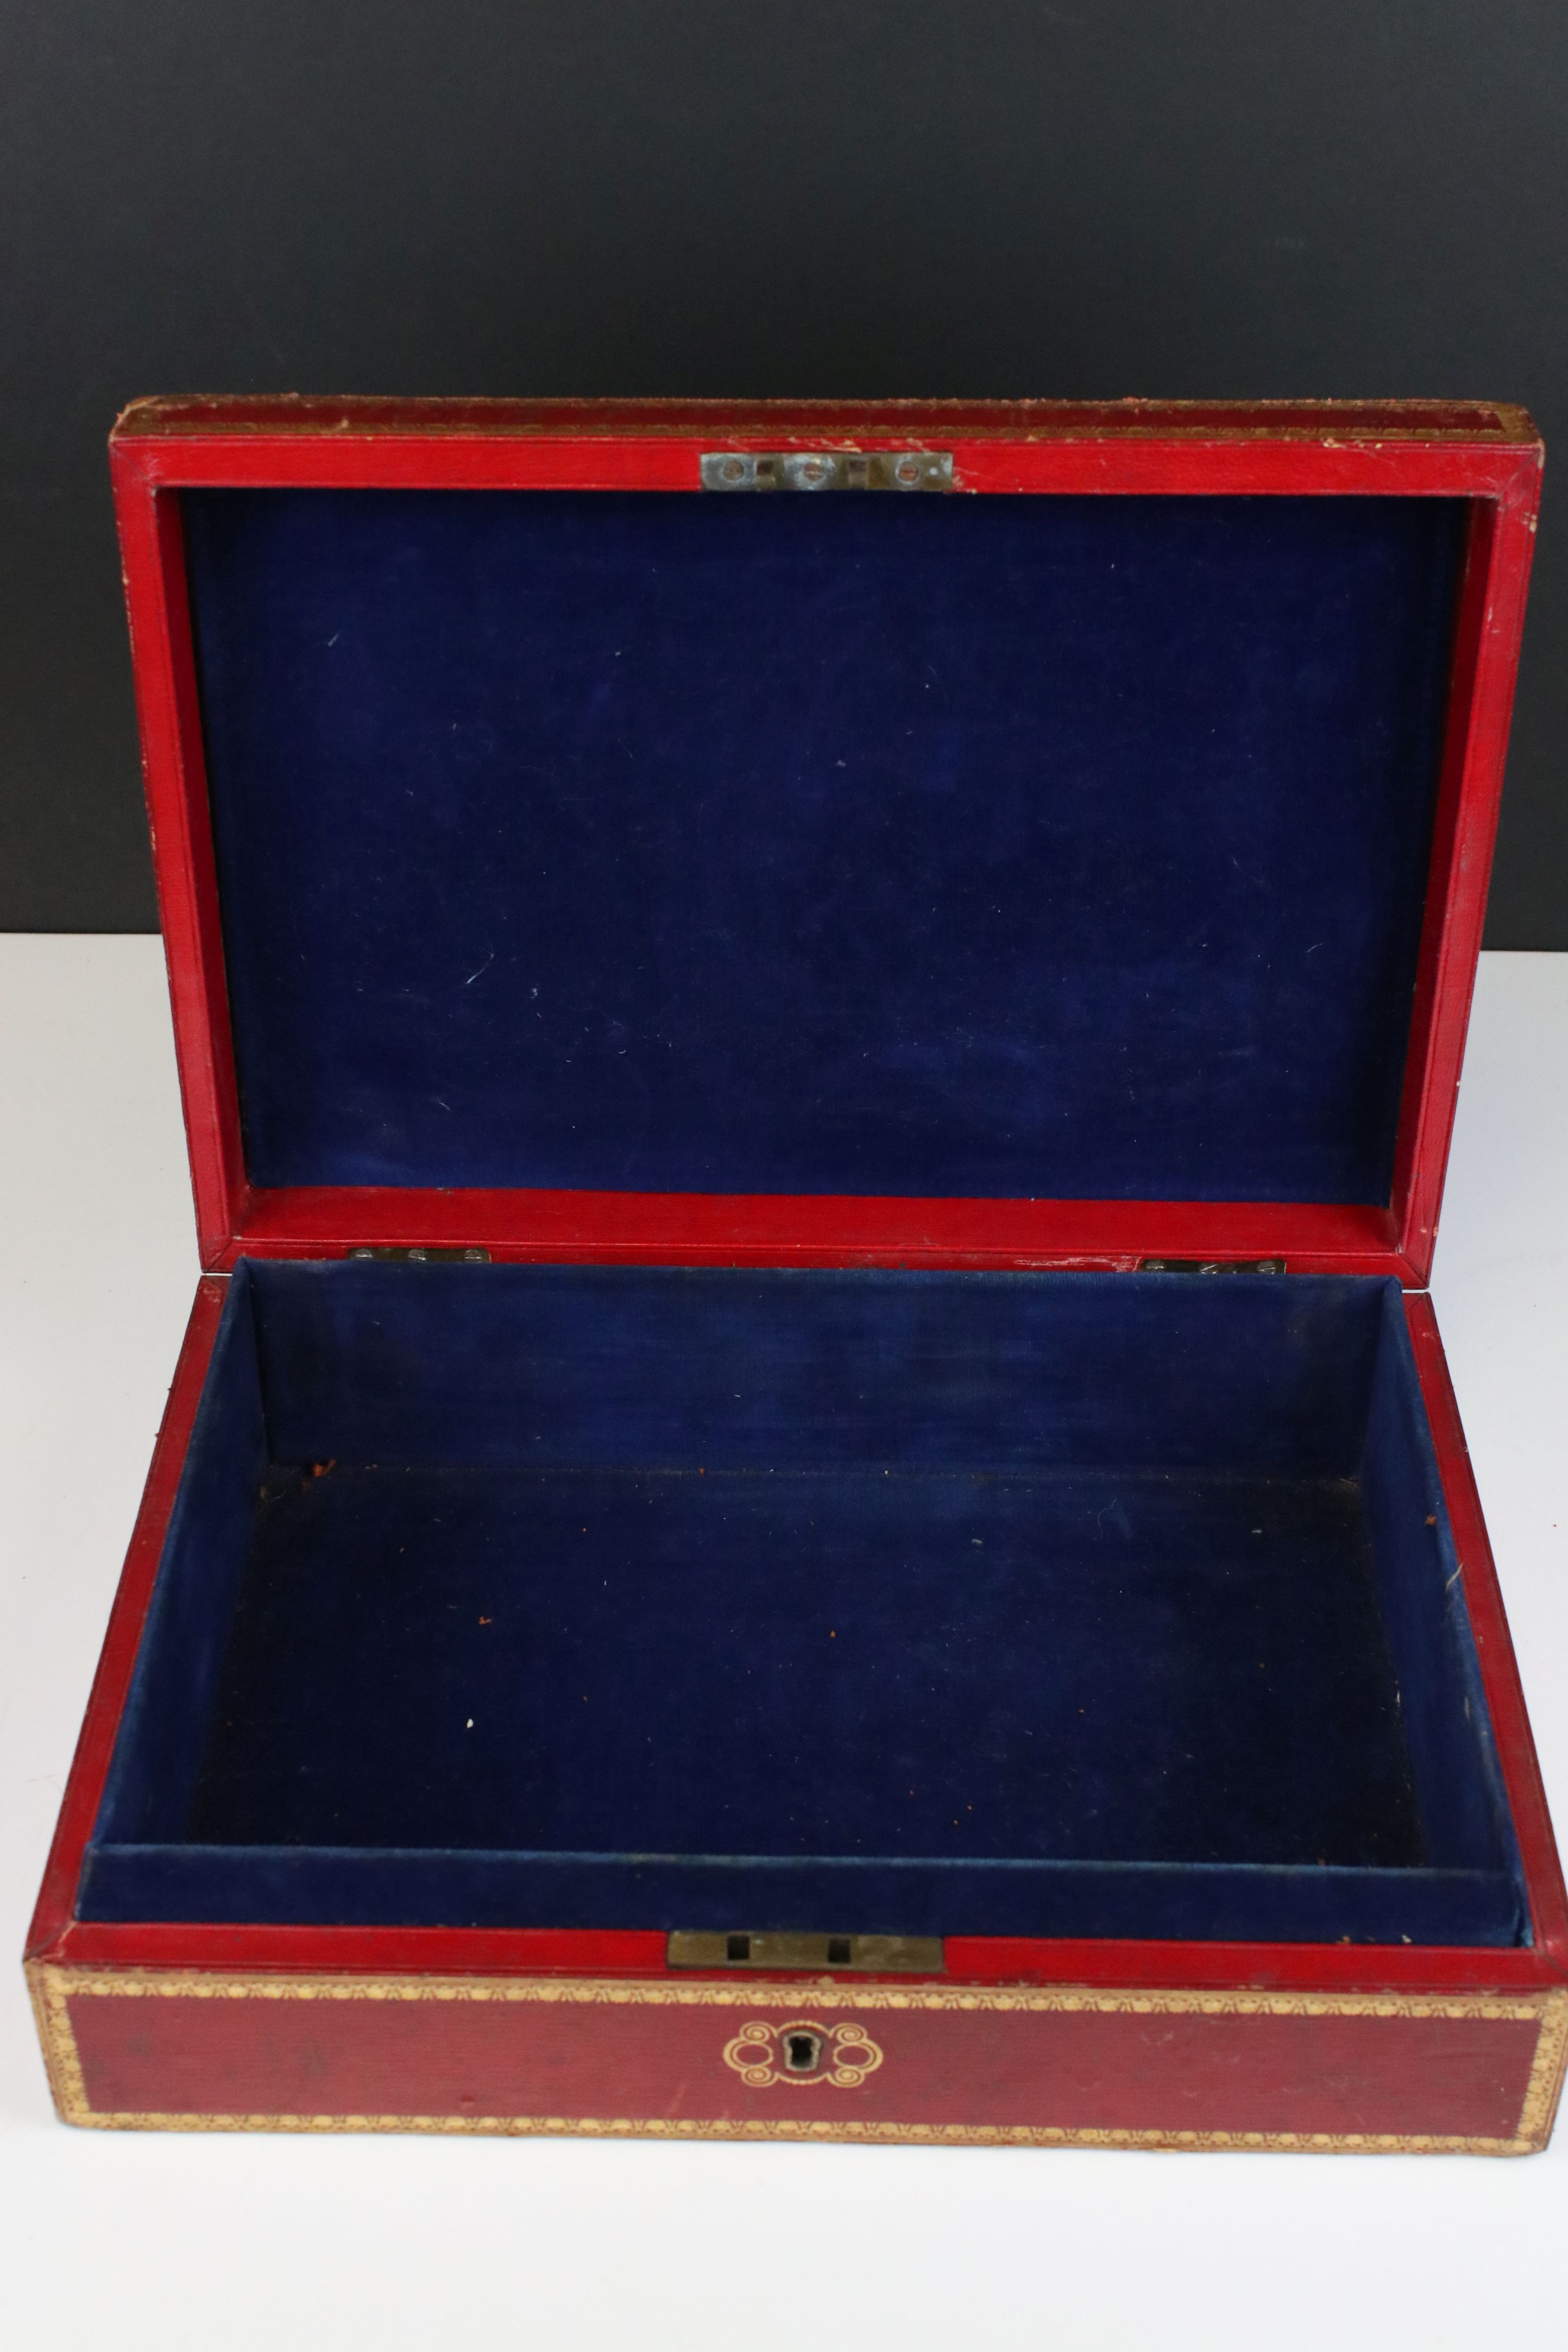 Late 19th / Early 20th century Tooled Red Leather and Gilt Box with blue lined interior containing a - Image 5 of 5